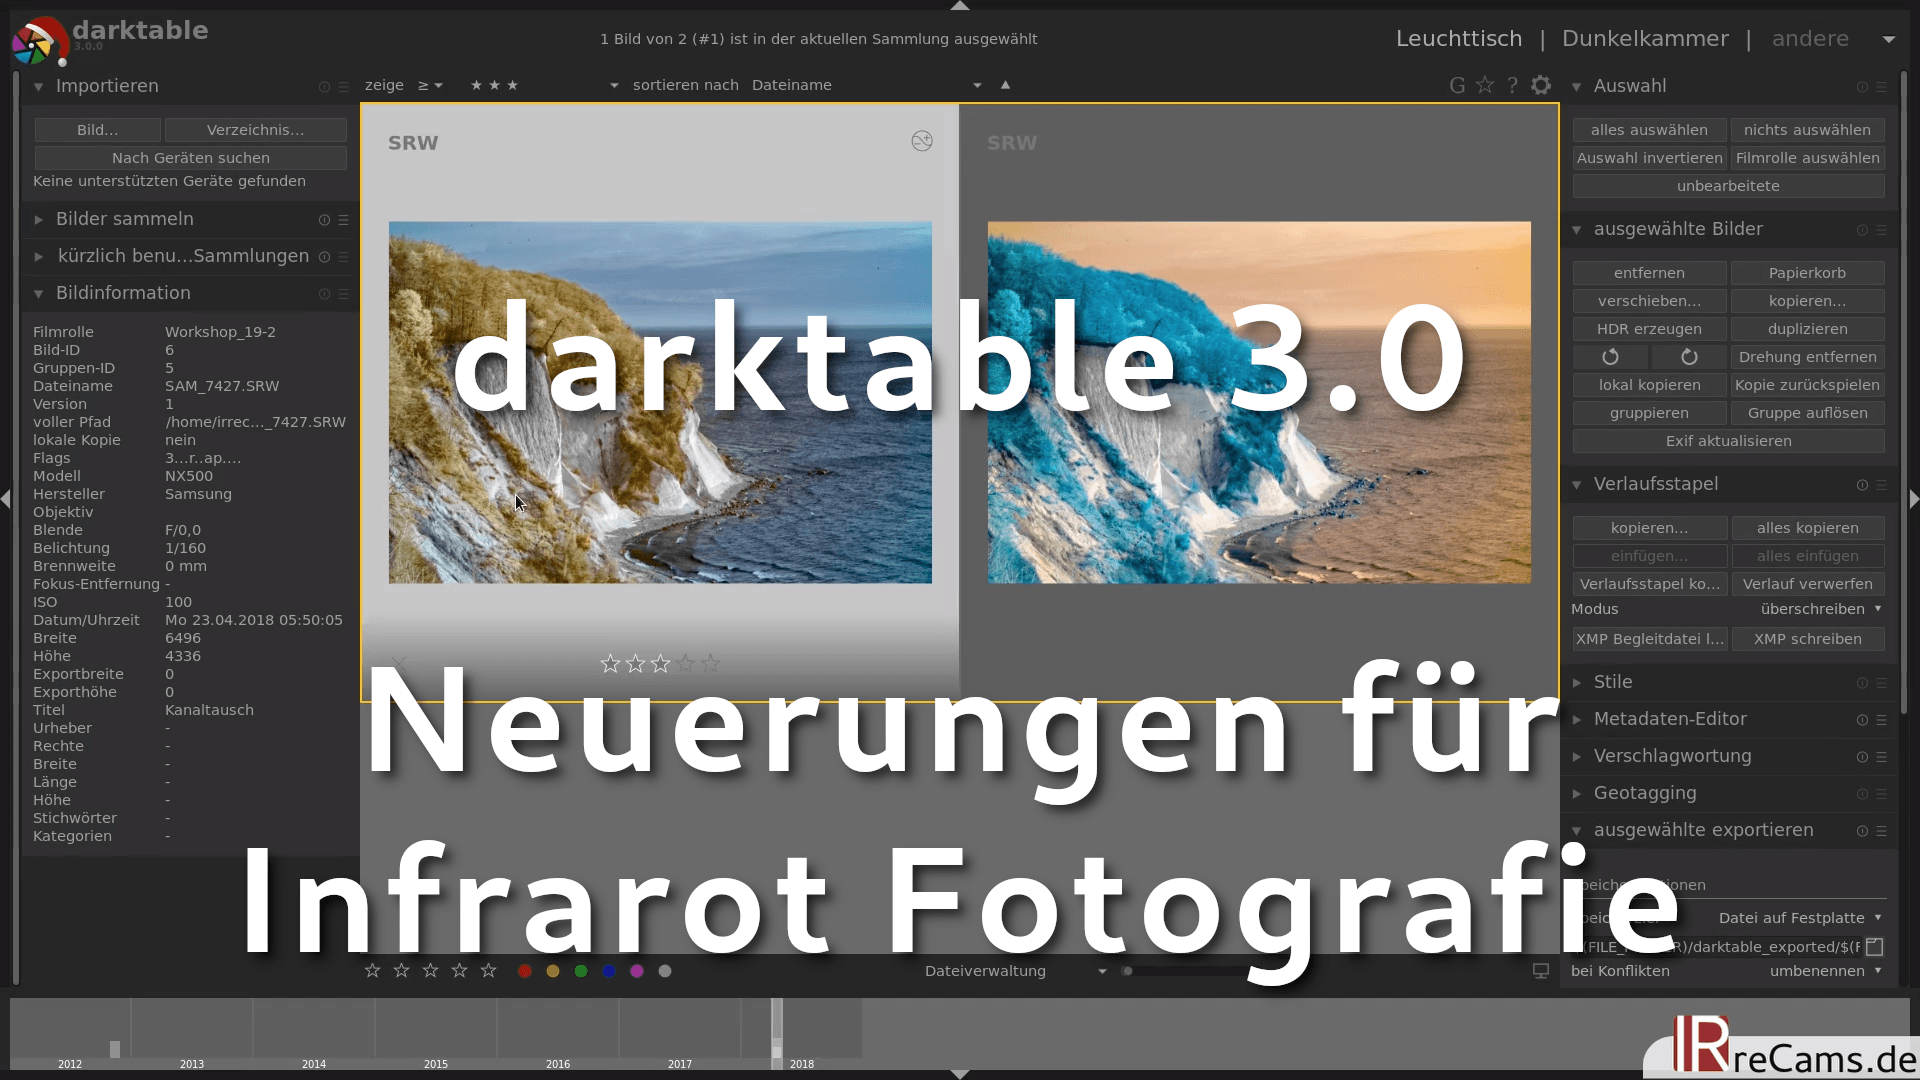 Infrarot Bildbearbeitung in darktable 3.0